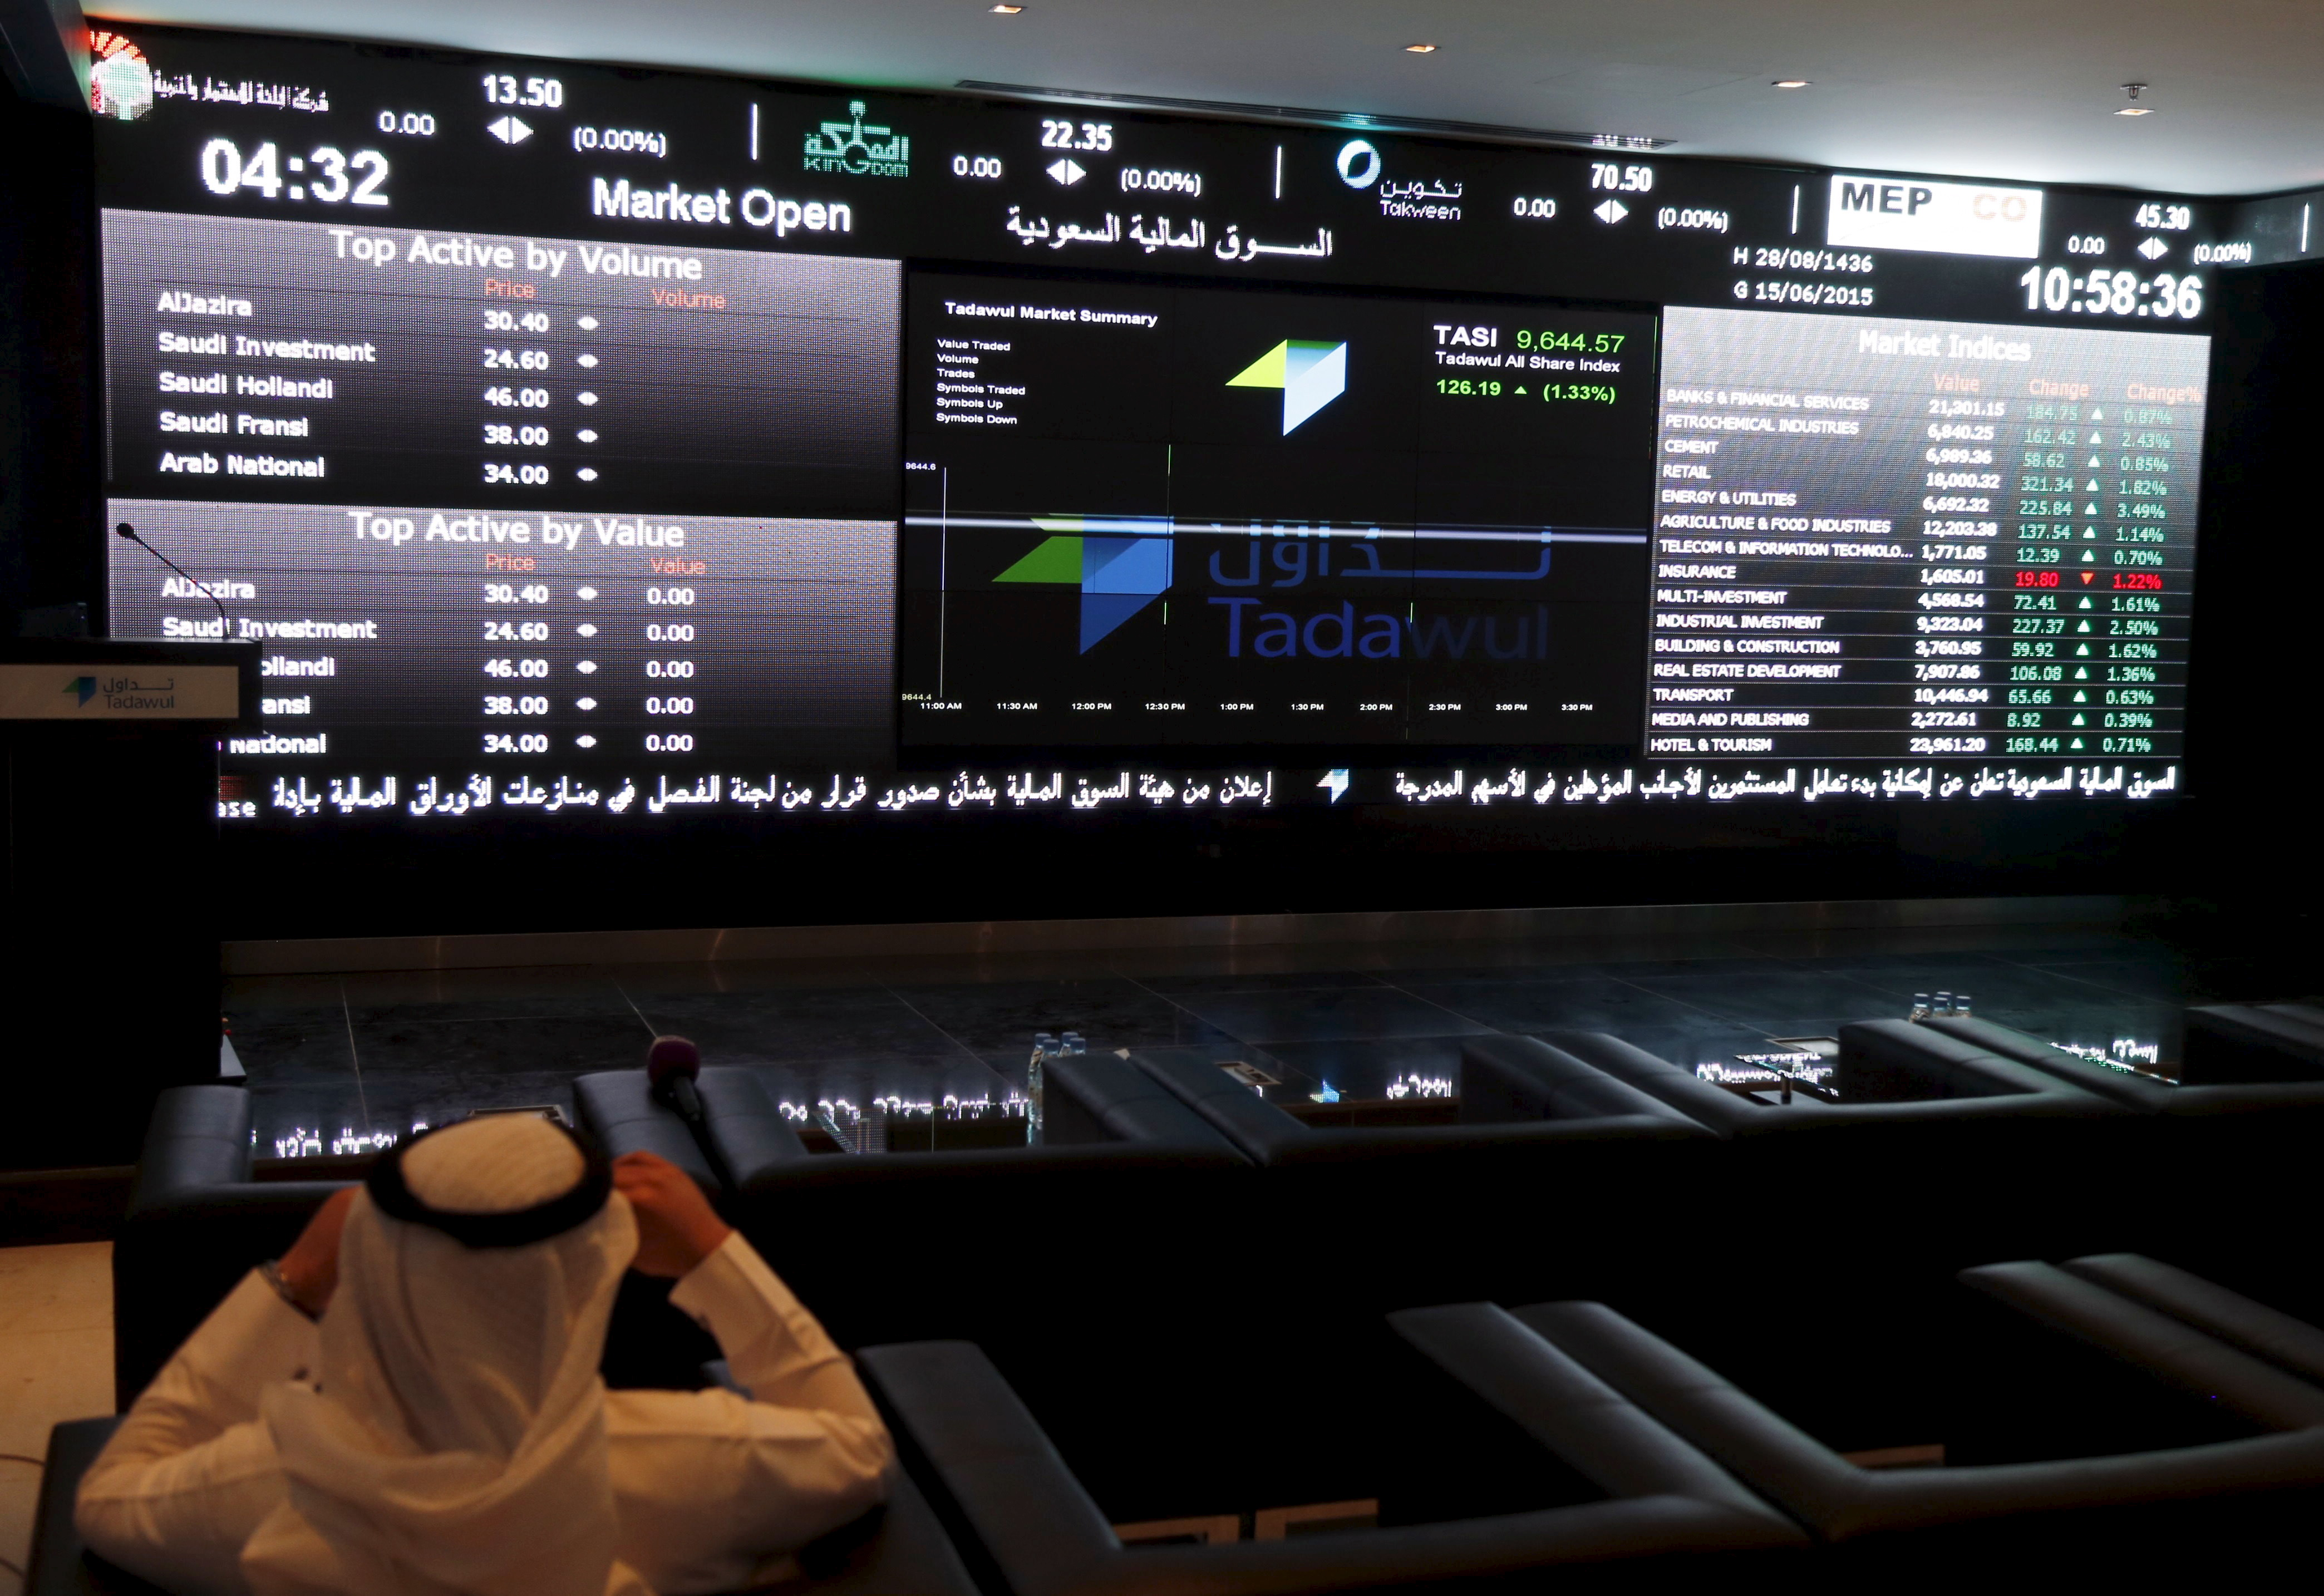 SABIC weighs on Saudi, most major Gulf markets mixed